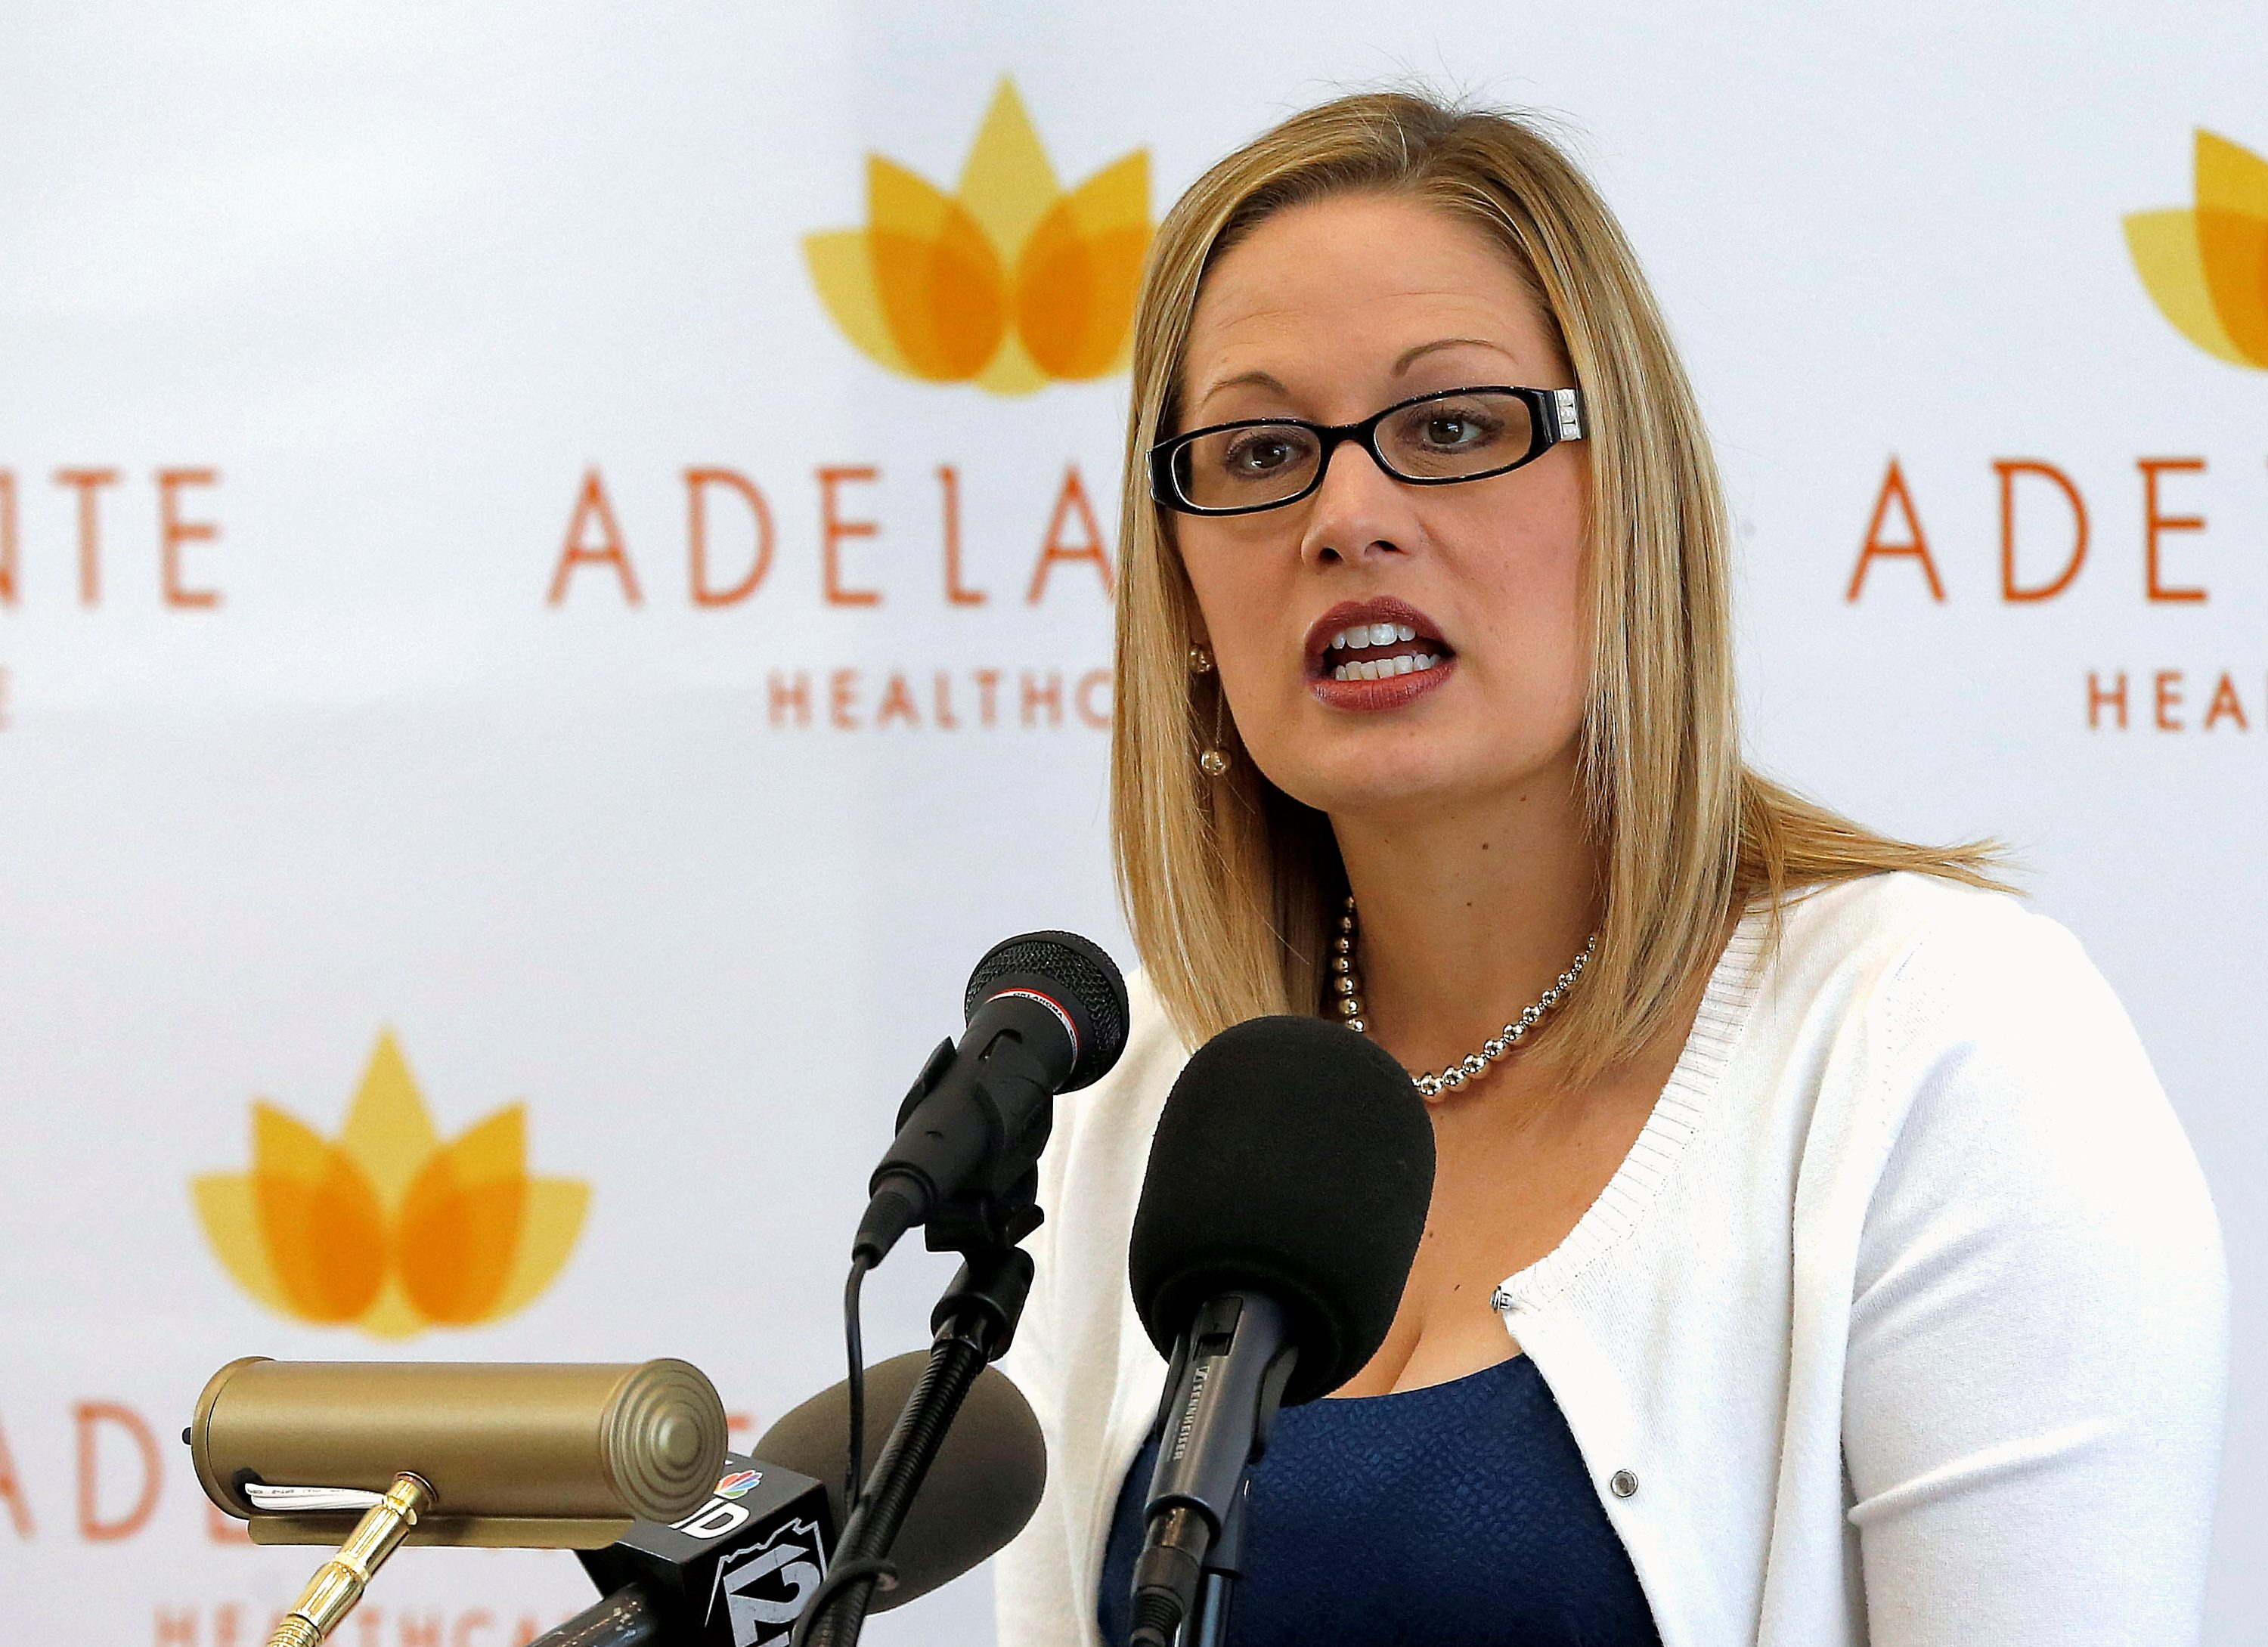 FILE - In this Aug. 20, 2013 file photo, U.S. Rep. Kyrsten Sinema, D-Ariz., speaks in Tempe, Ariz. Sinema has been the subject of speculation since Rep. Ed Pastor, D-Ariz., announced he was retiring after 23 years serving his solidly Democratic south Phoenix district. Sinema's campaign and political consultants aren't addressing questions as to whether she'll jump districts. (AP Photo/Matt York, File)